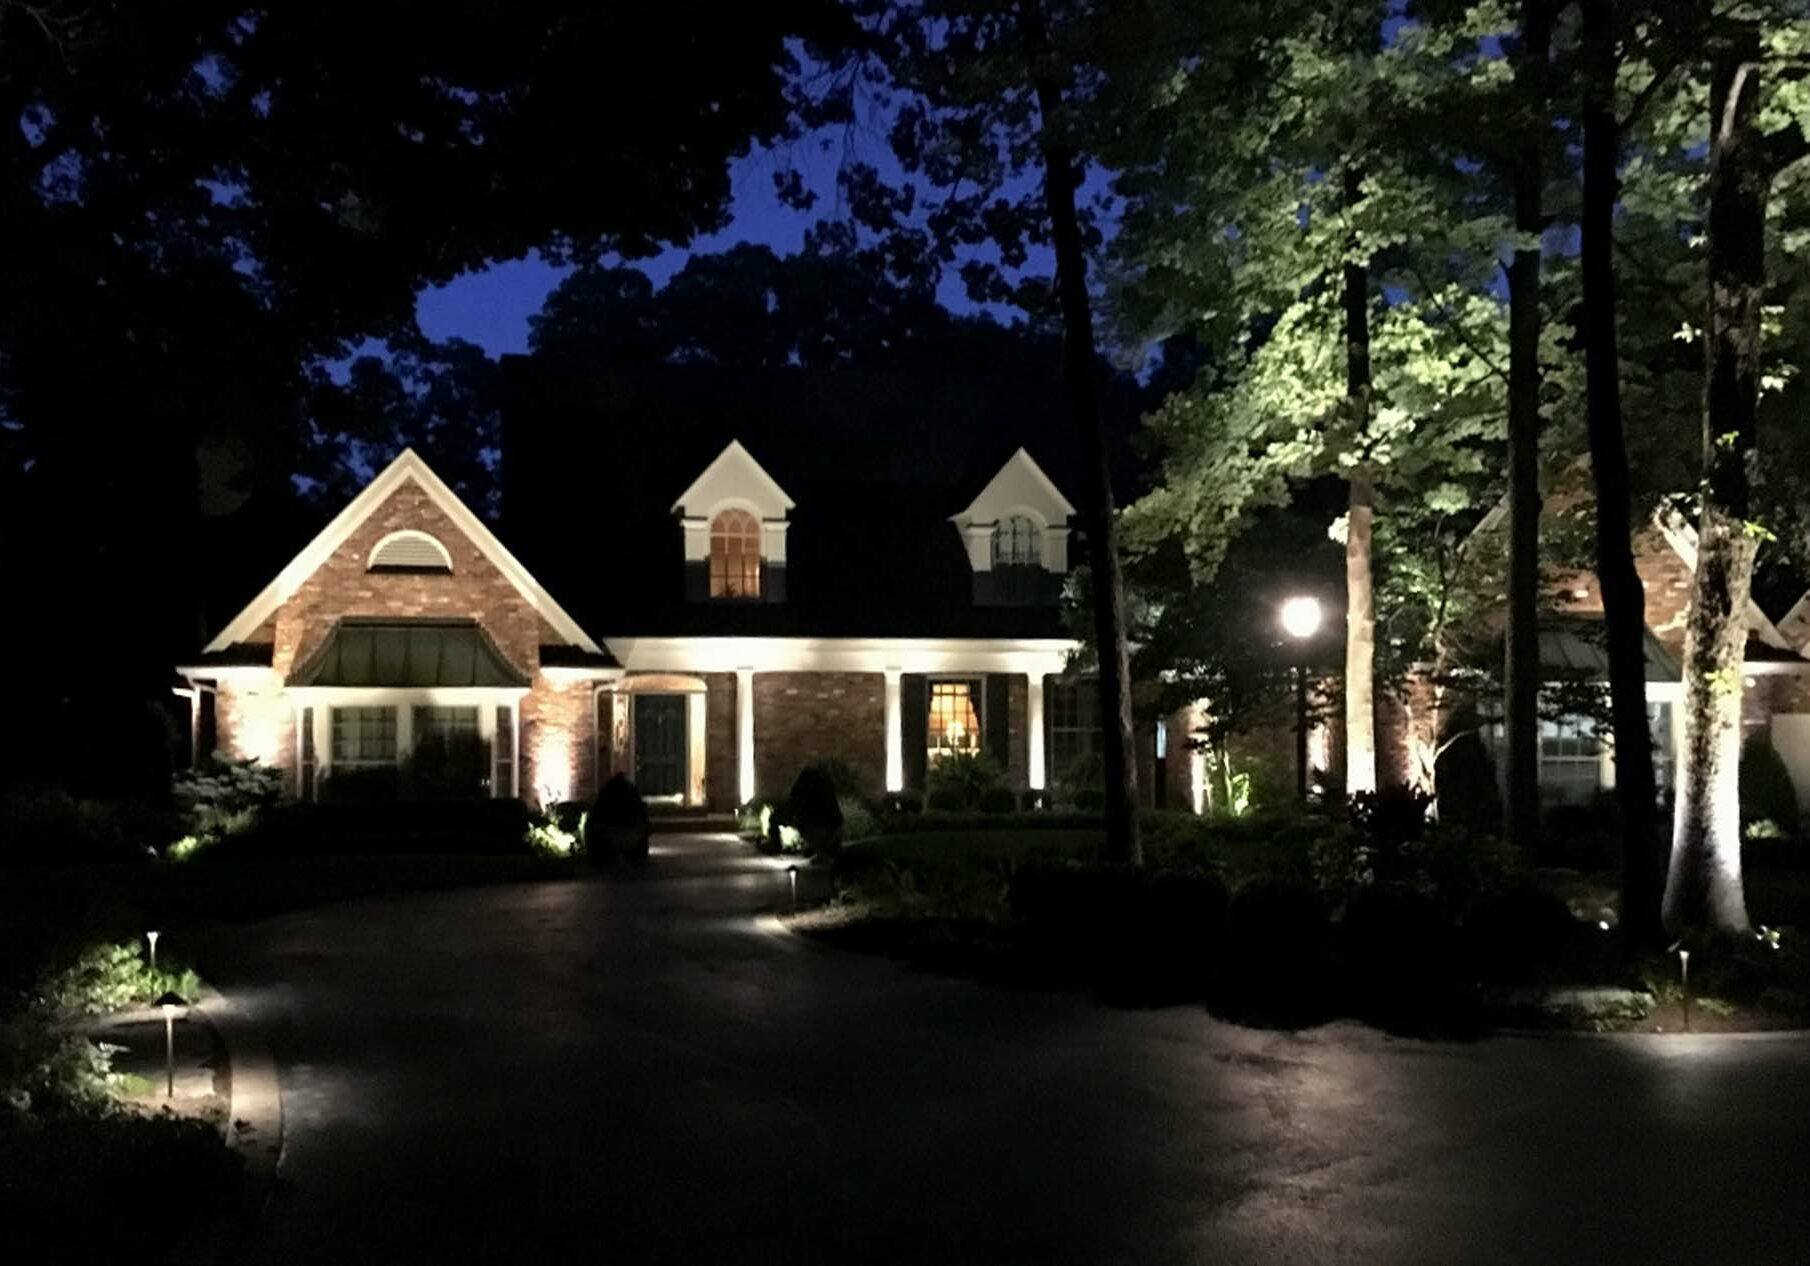 landscape lighting outside of a house